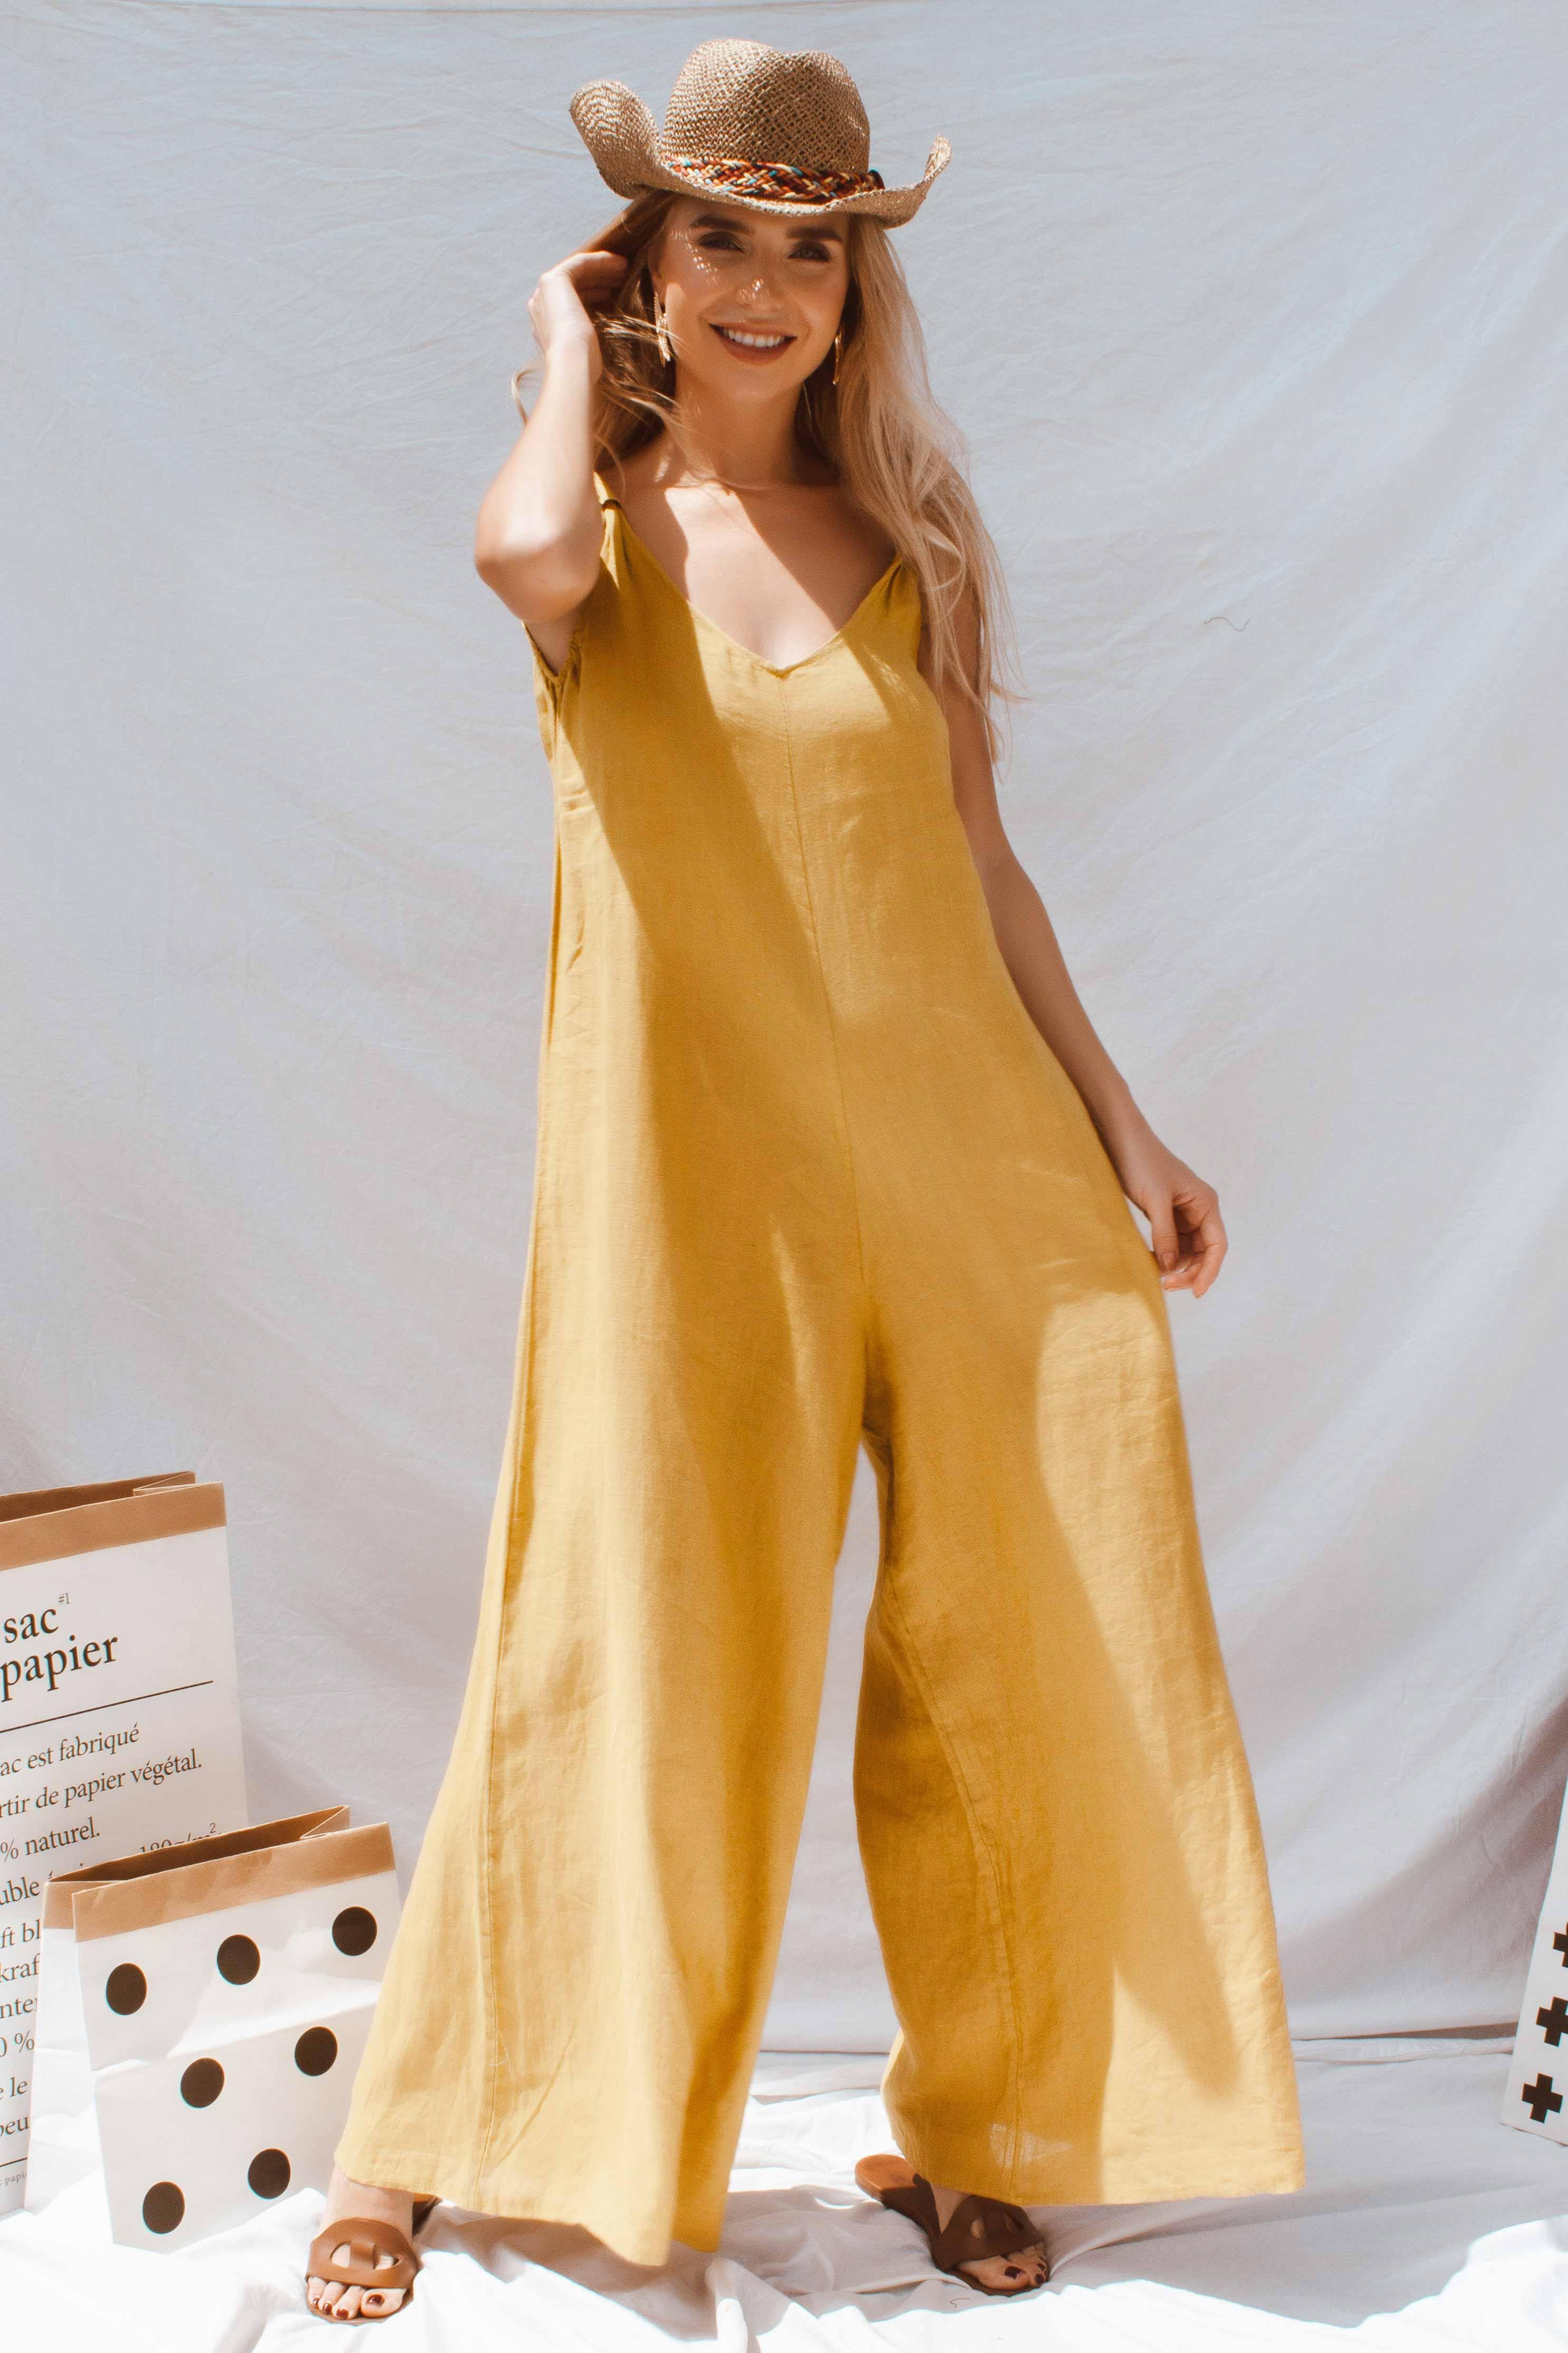 APOLLO JUMPSUIT IN YELLOW | Women's Online Shopping | CHICLEFRIQUE  (2165075017817)